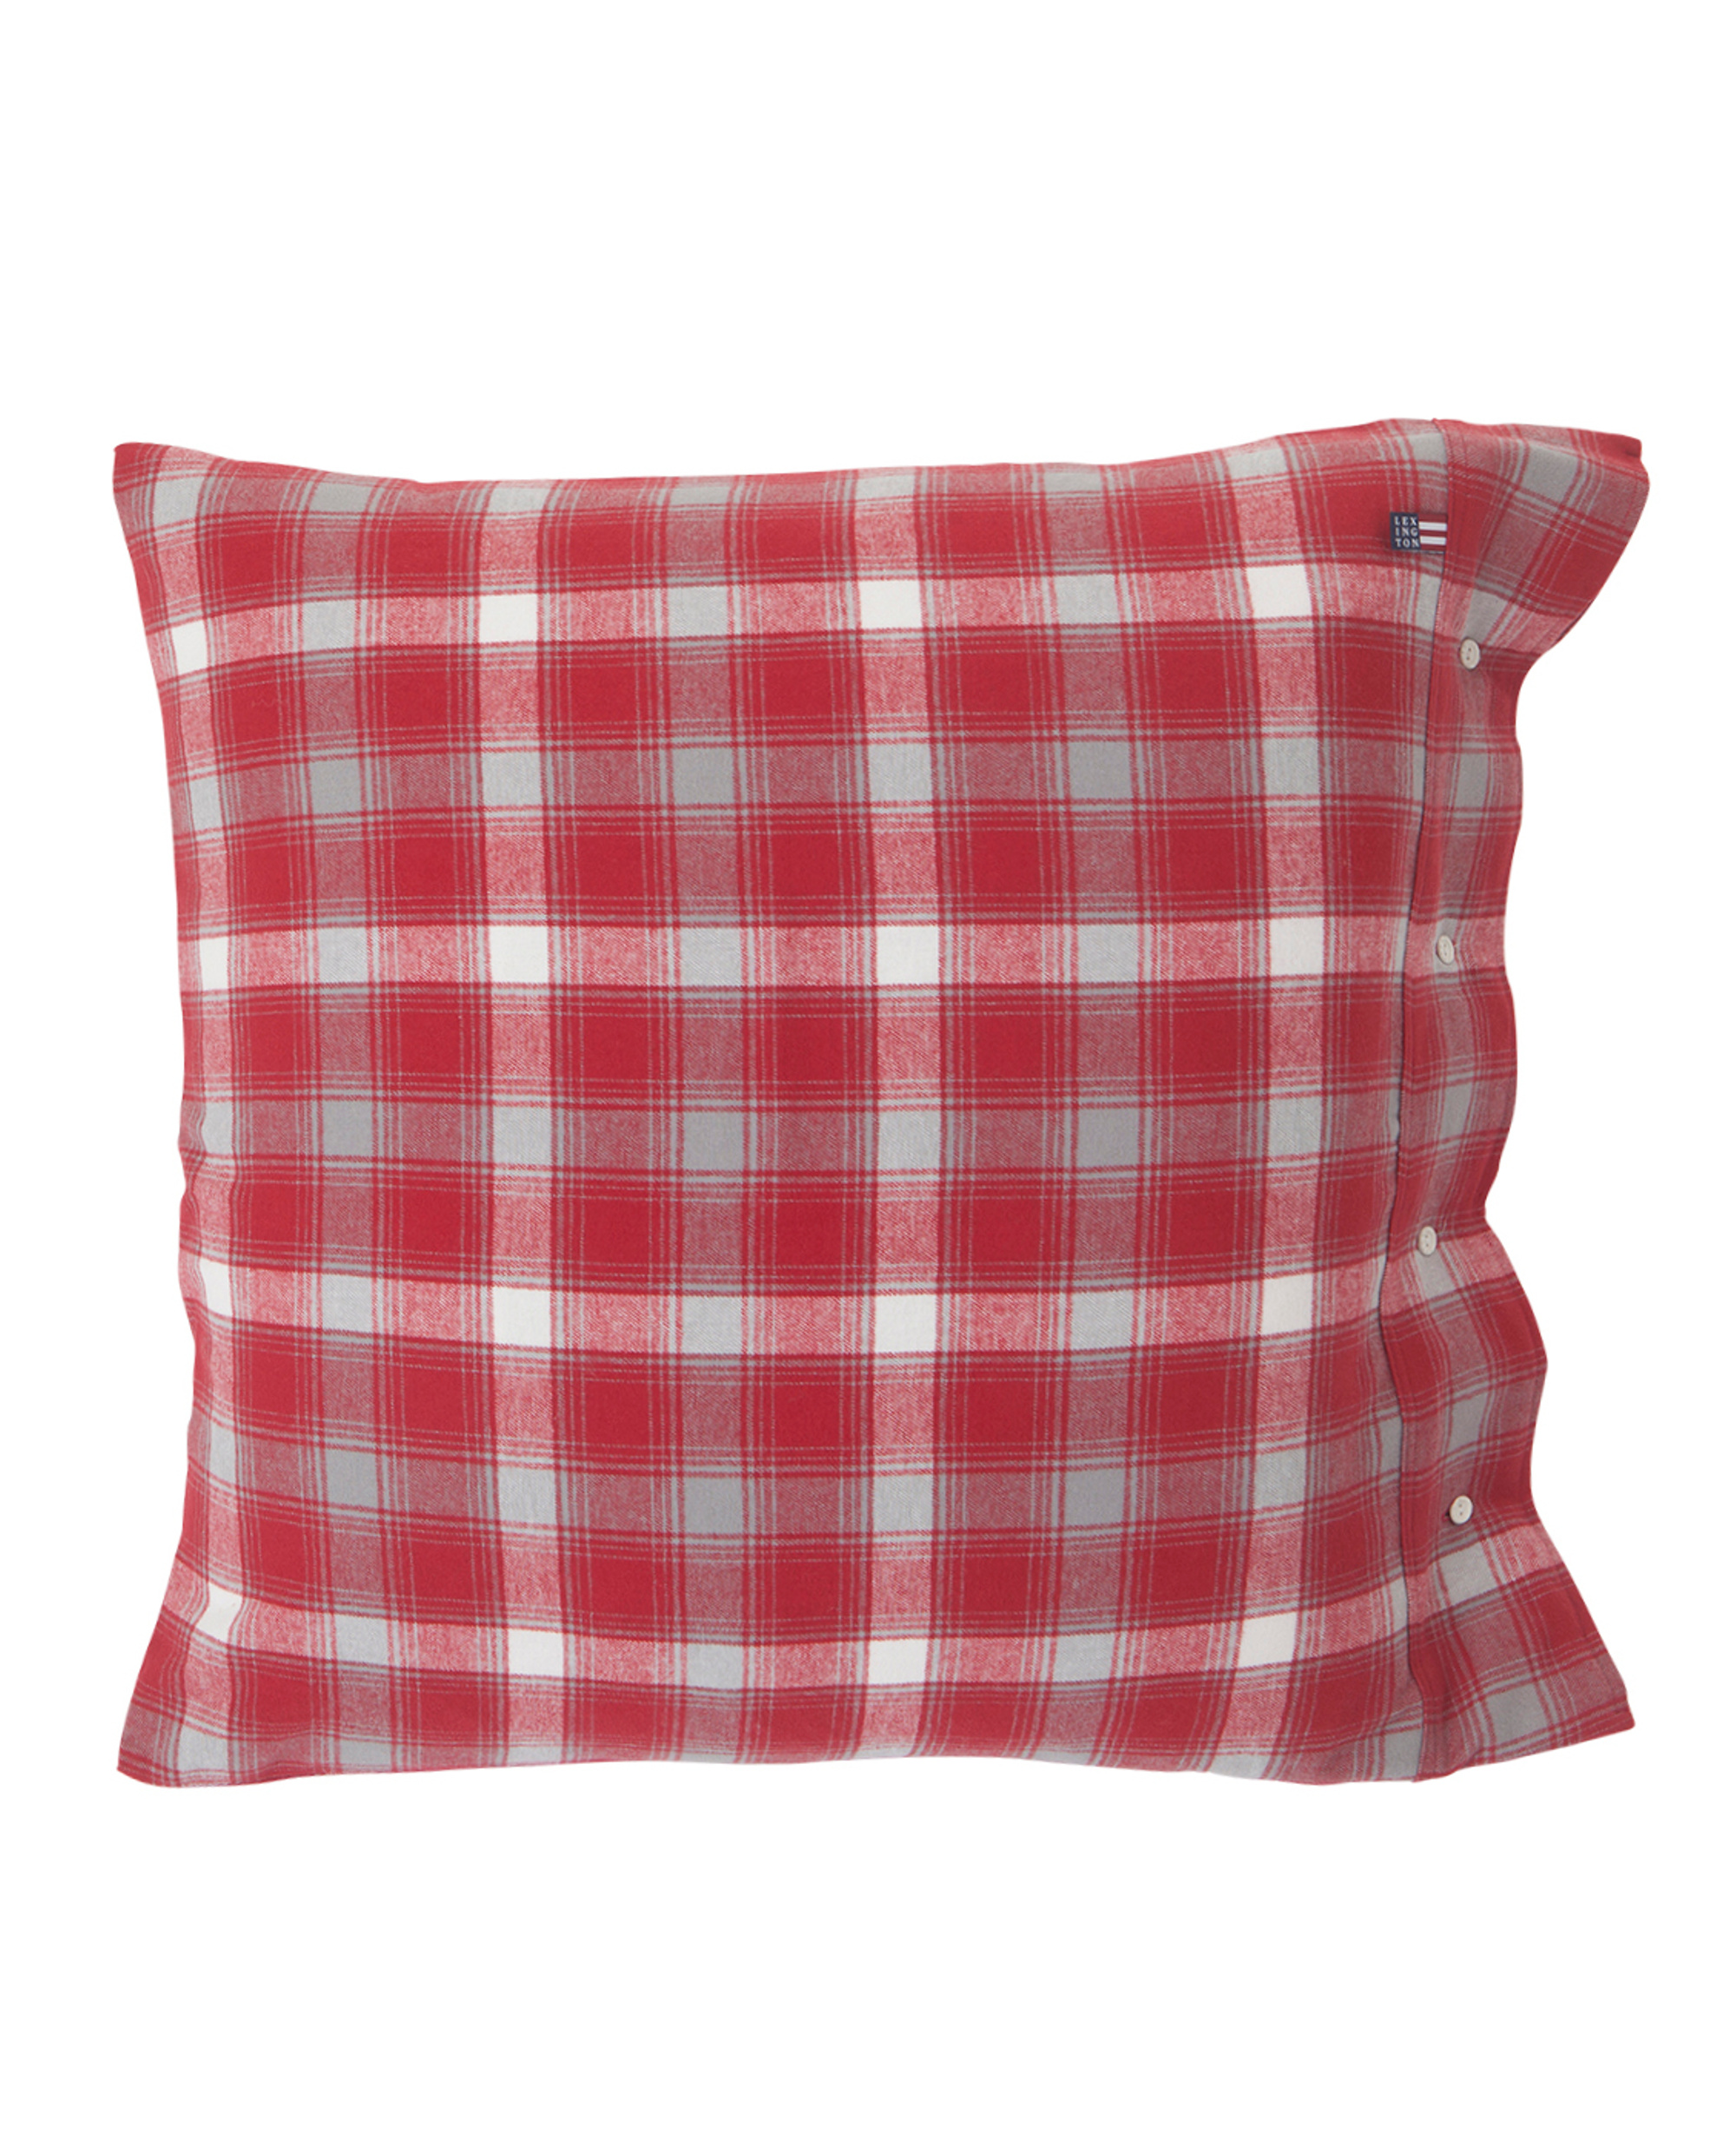 Checked Flannel Pillowcase, Red/Gray